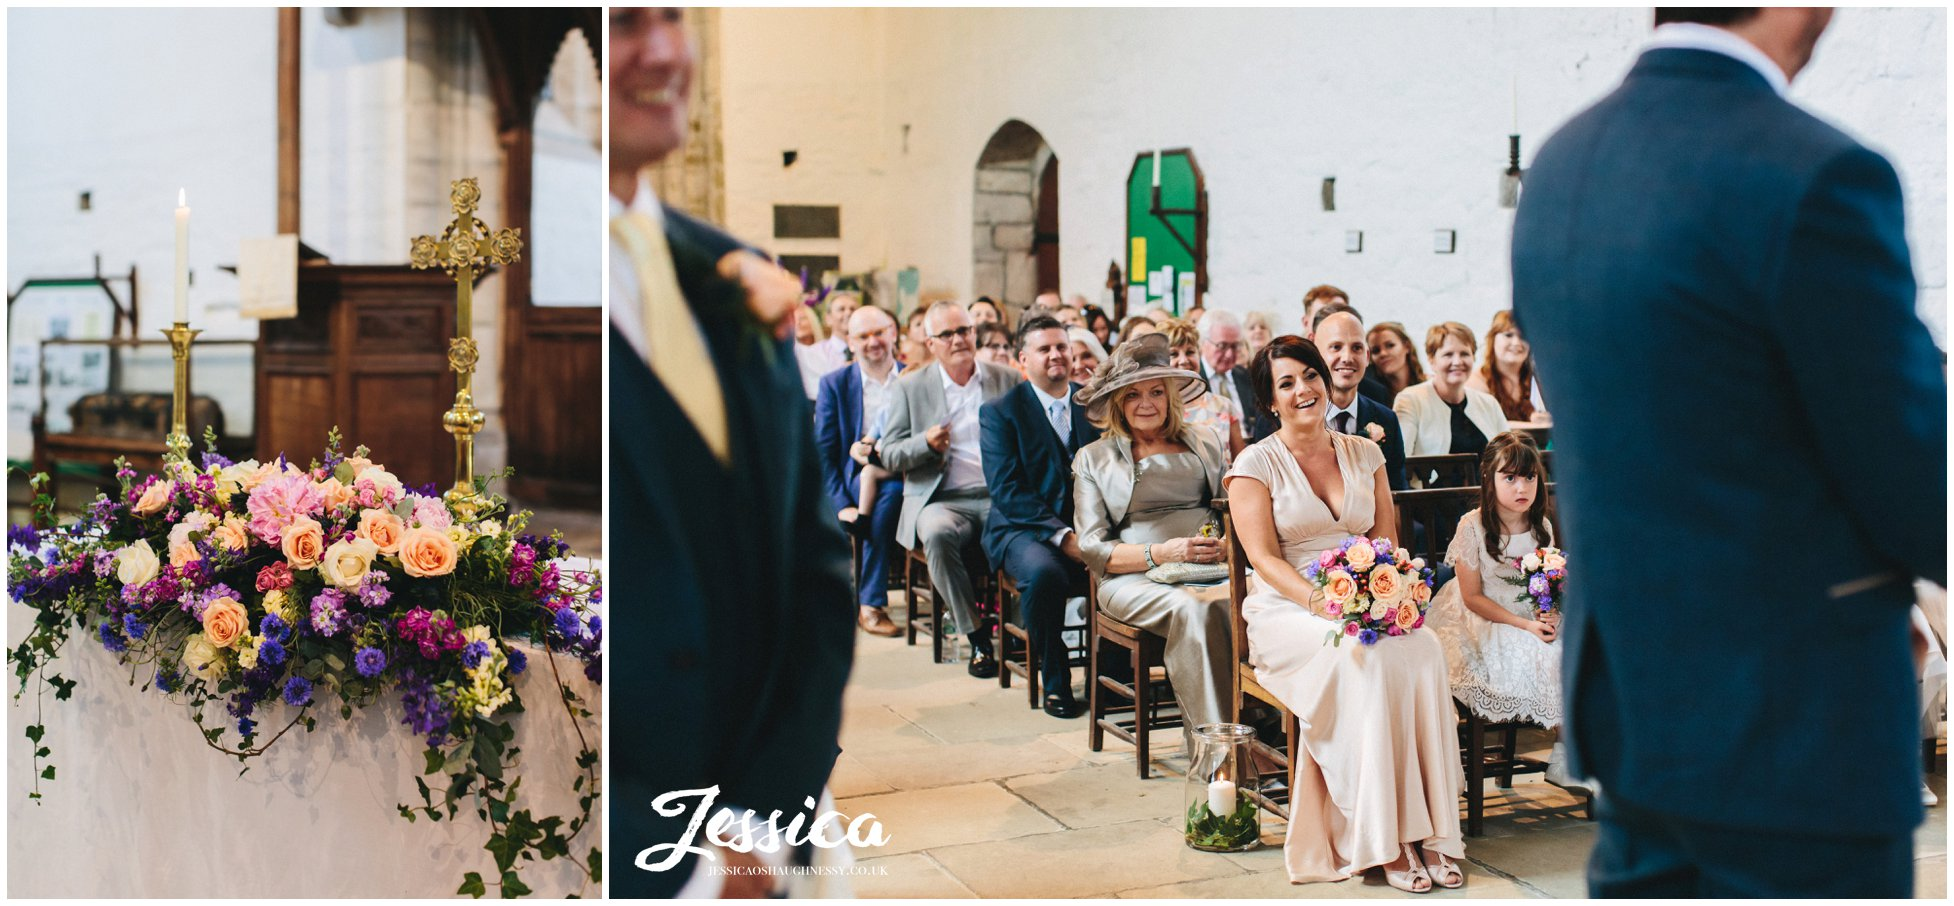 wedding guests smile during the touching wedding ceremony